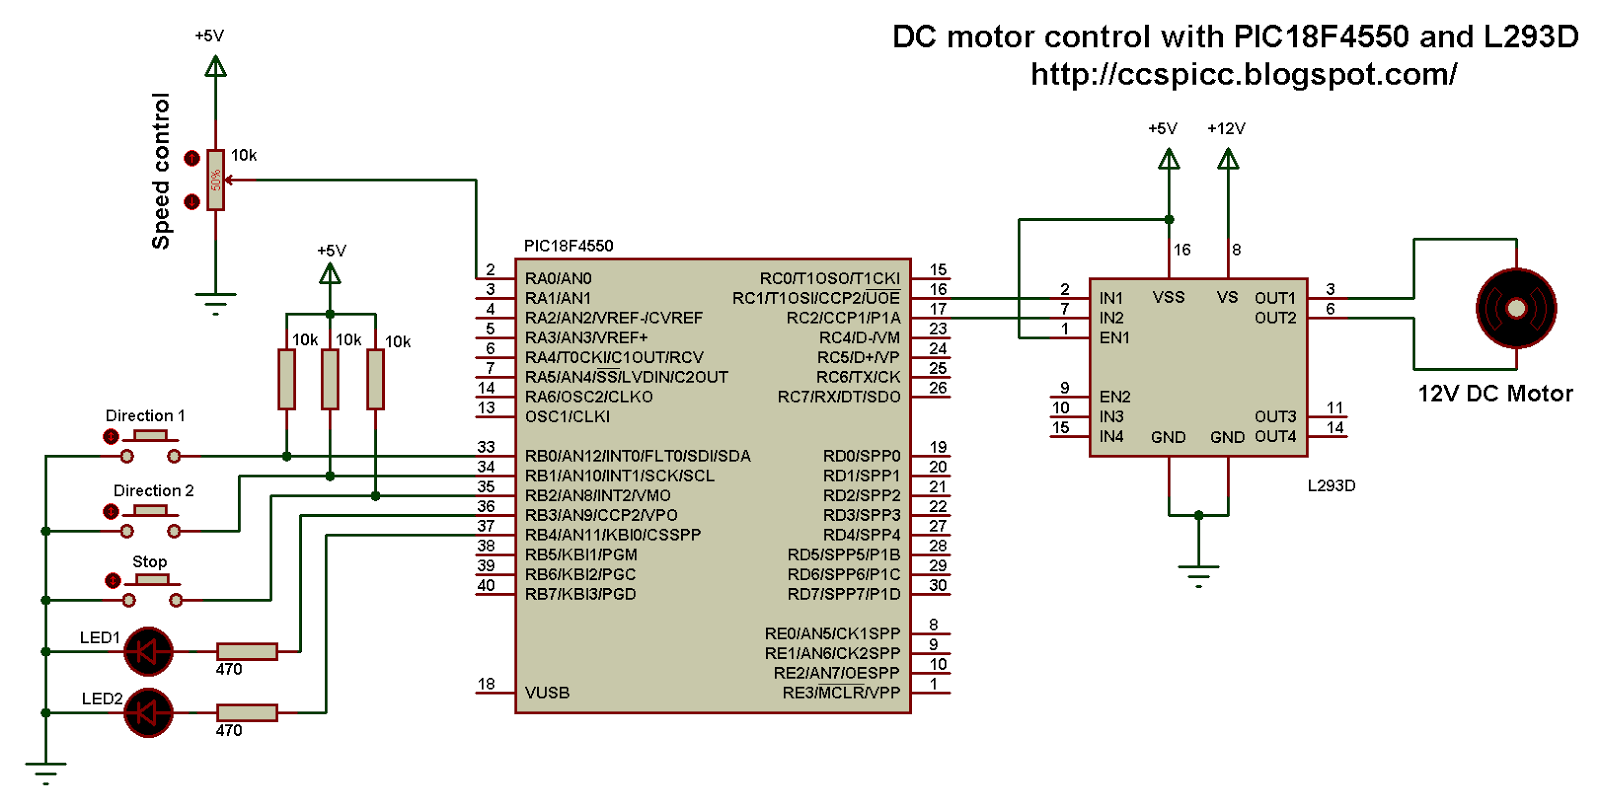 L293d Schematic One Direction Wire Data Schema Pin Diagram Dc Motor Control With Pic18f4550 And Proteus Circuit Explanation